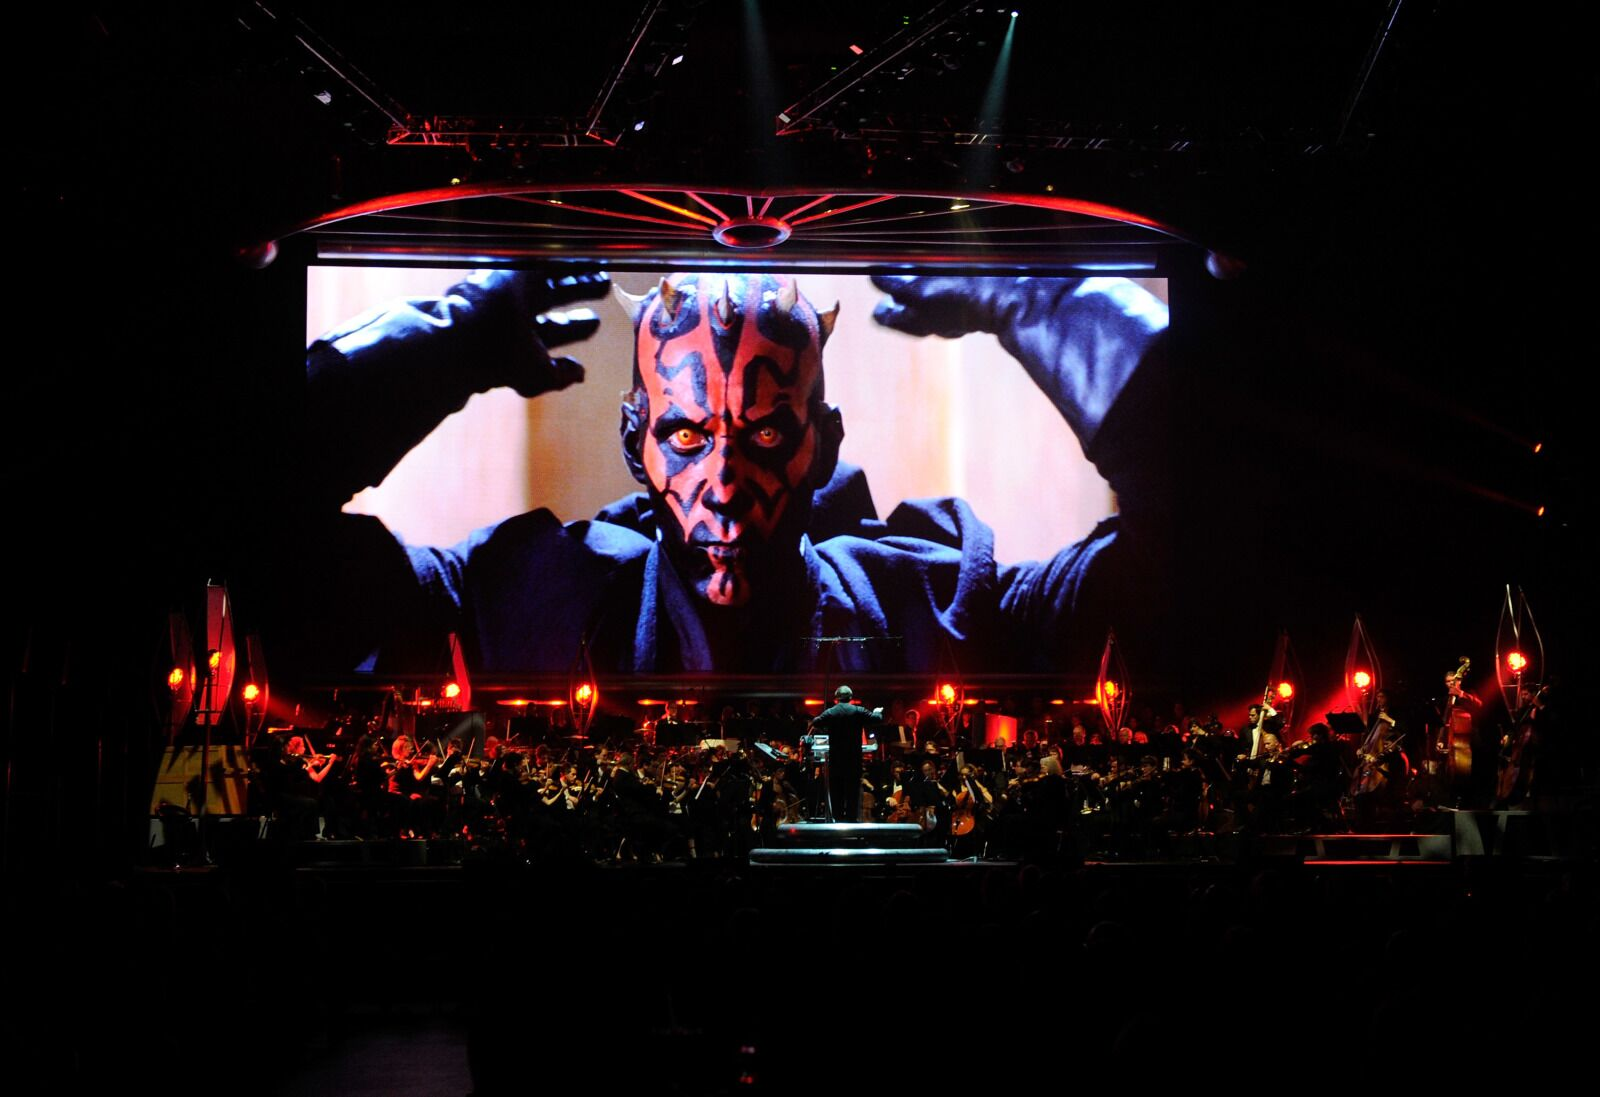 Star Wars: The Darth Maul video game that was never released